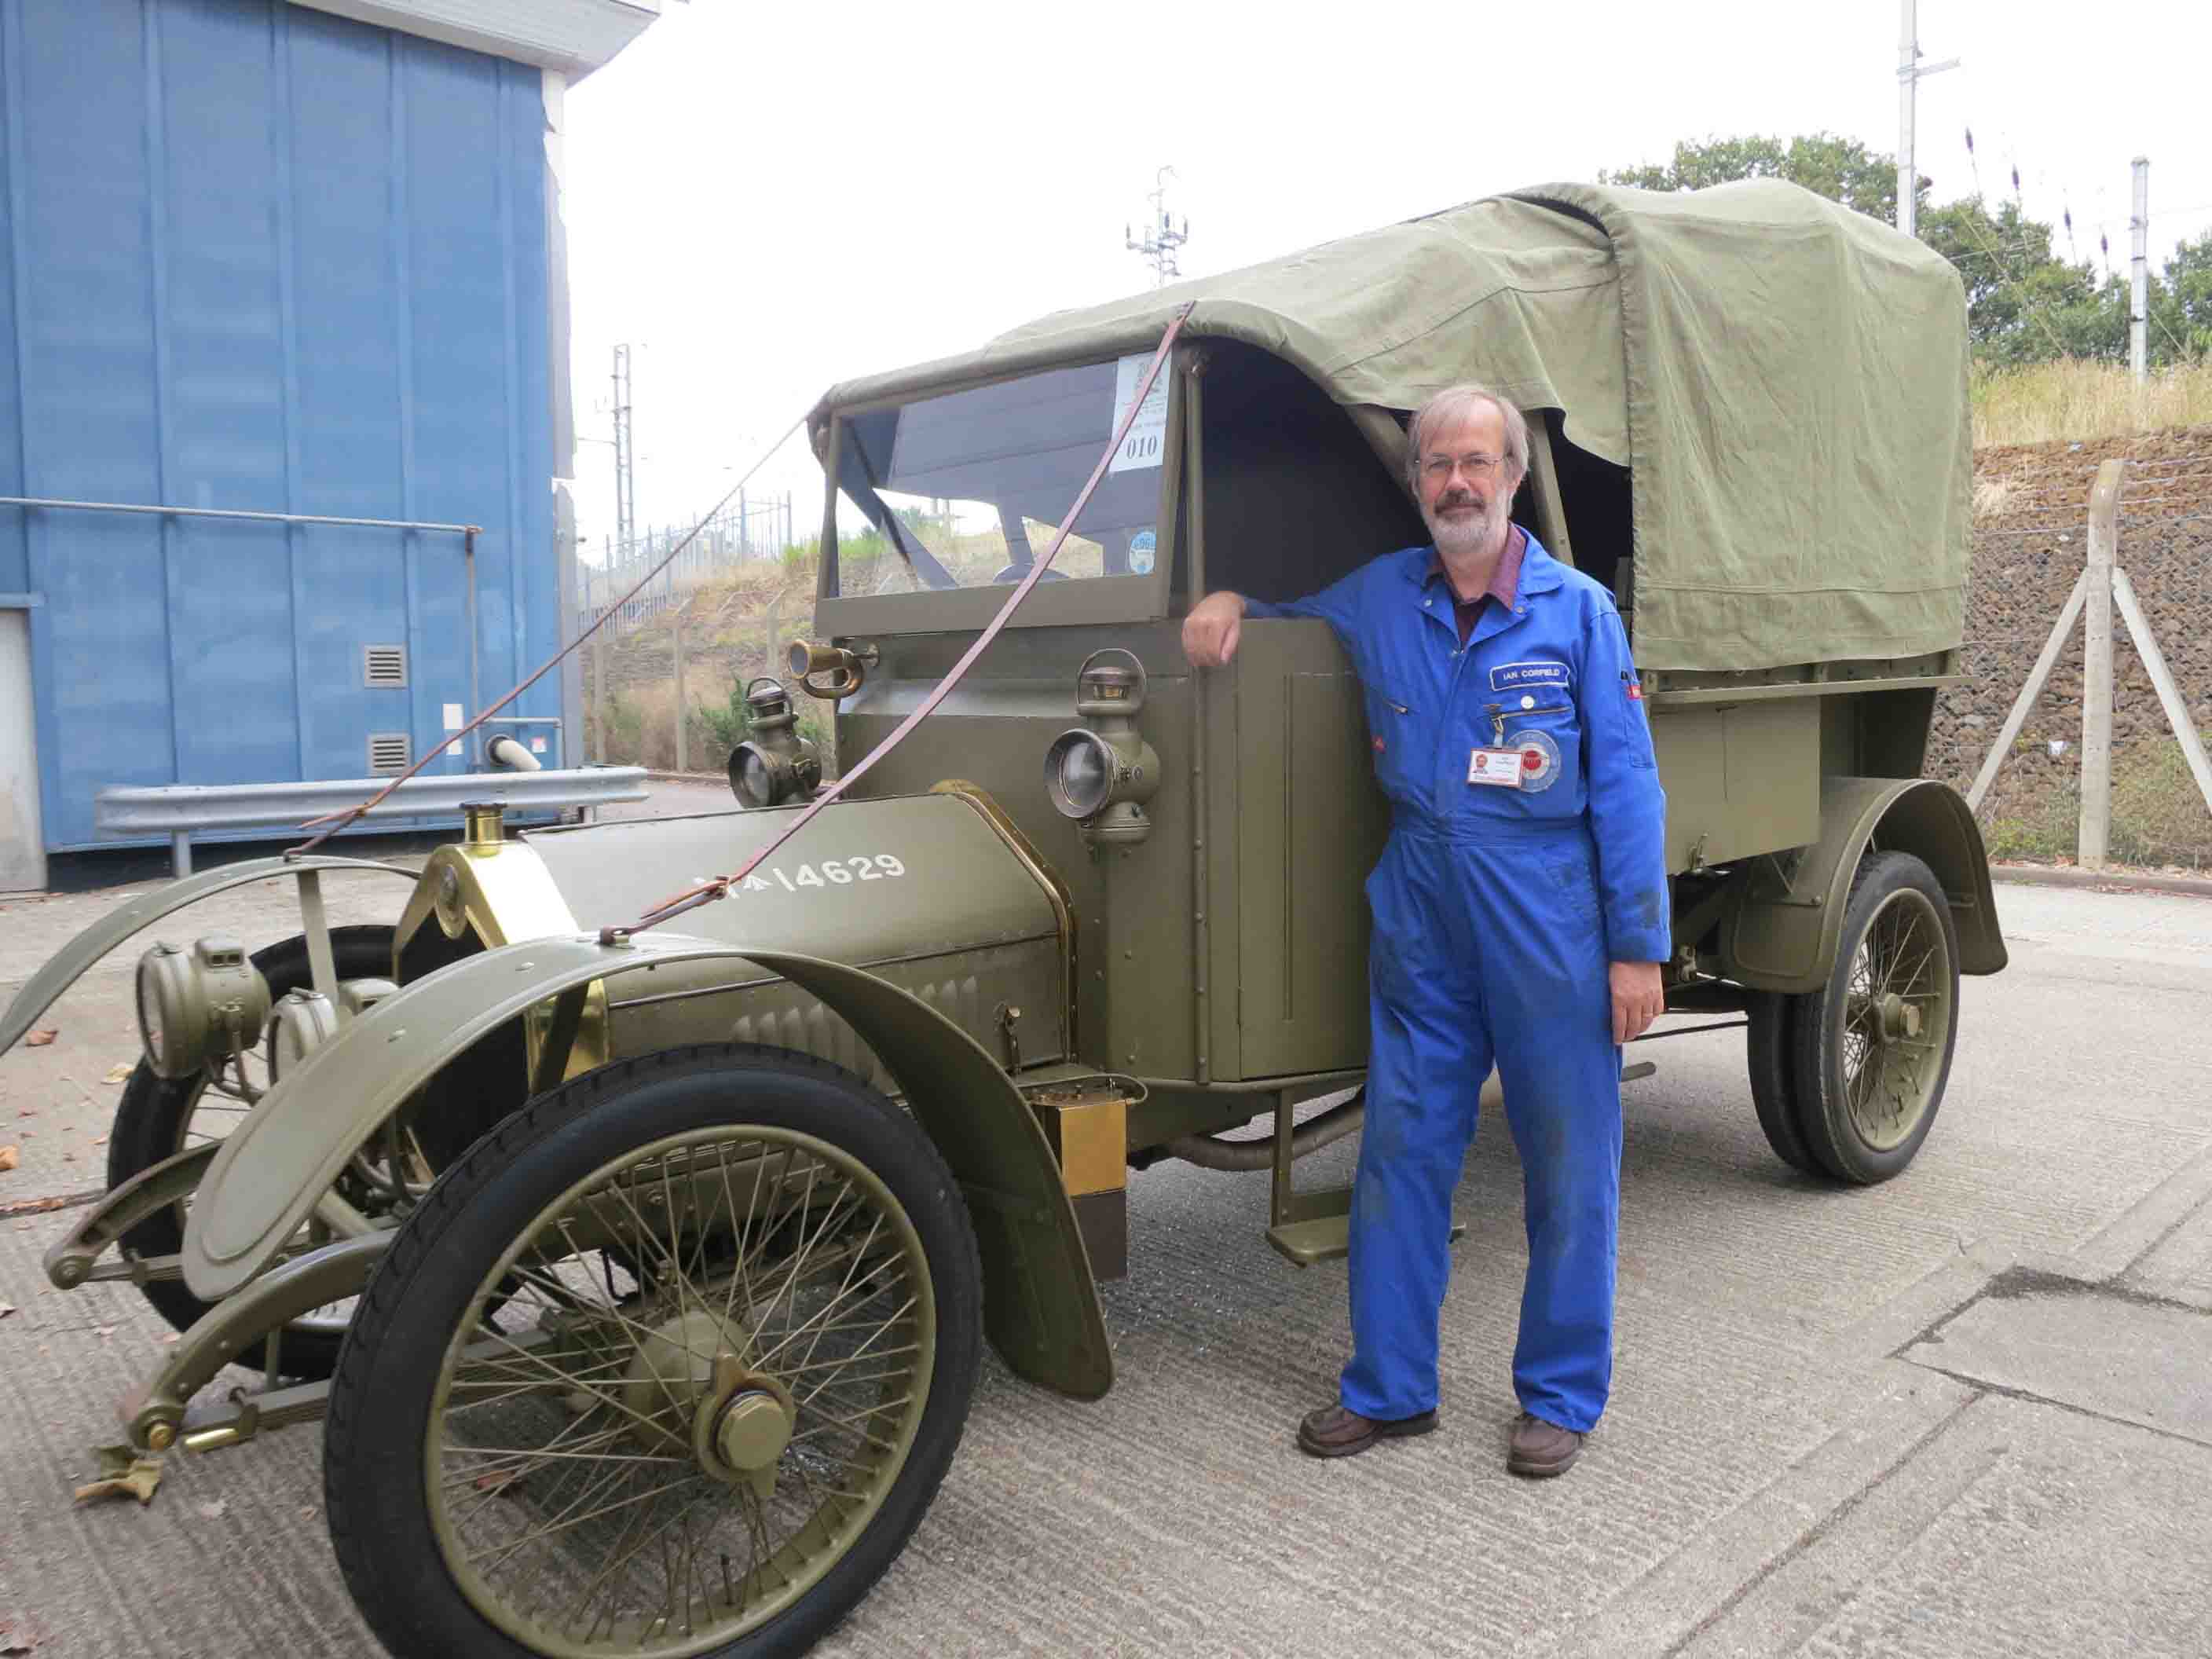 RAF Museum Volunteer wins 'Going the Extra Mile' Award